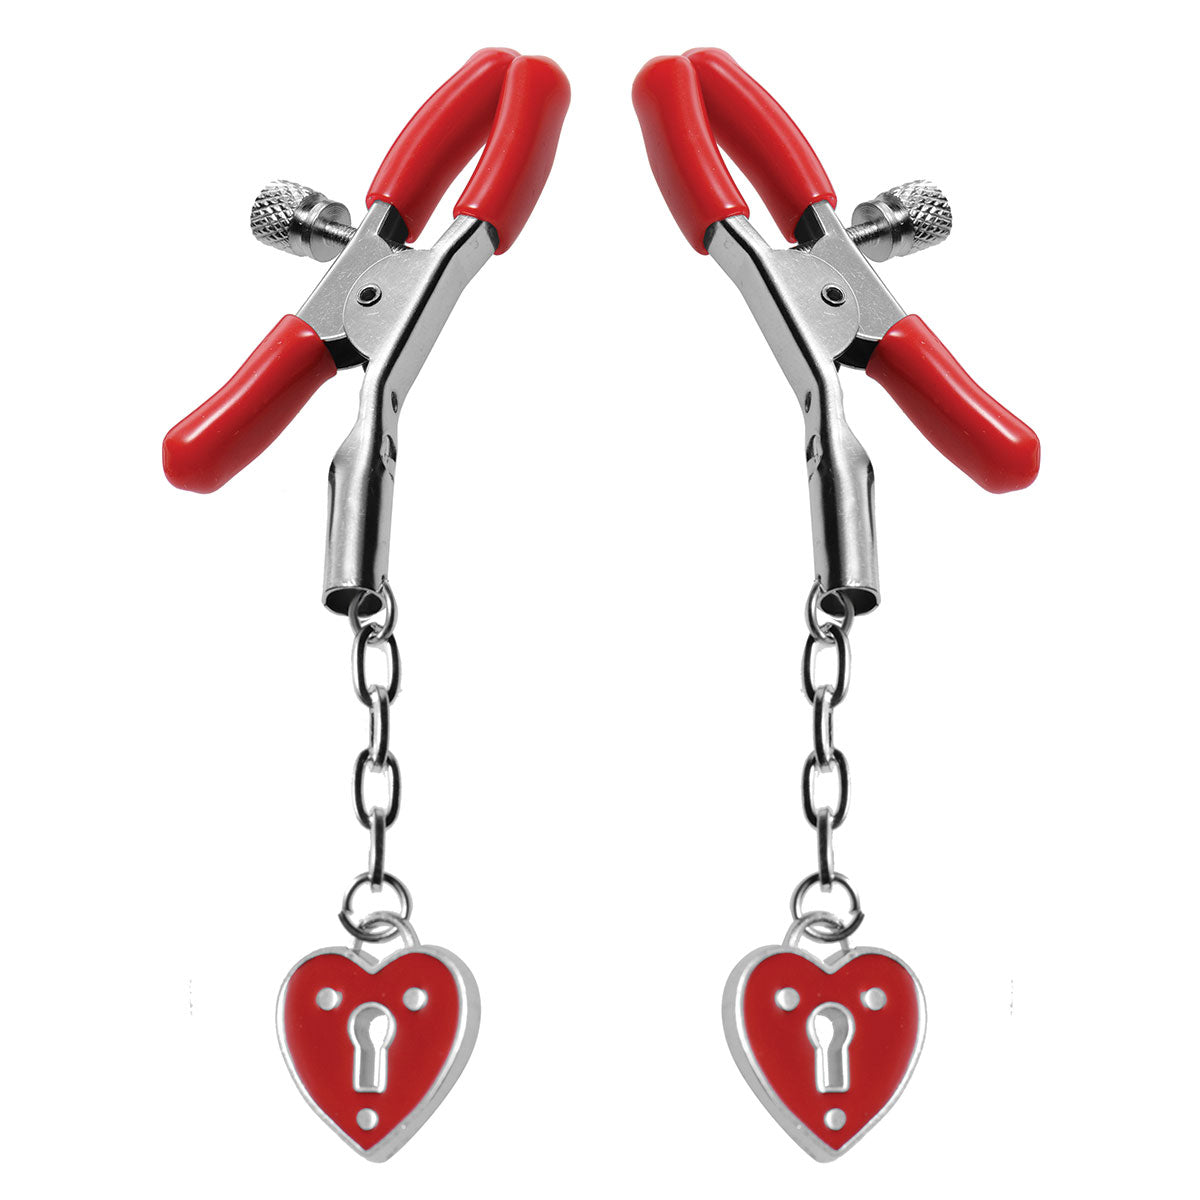 Heart Padlock Nipple Clamps - Red